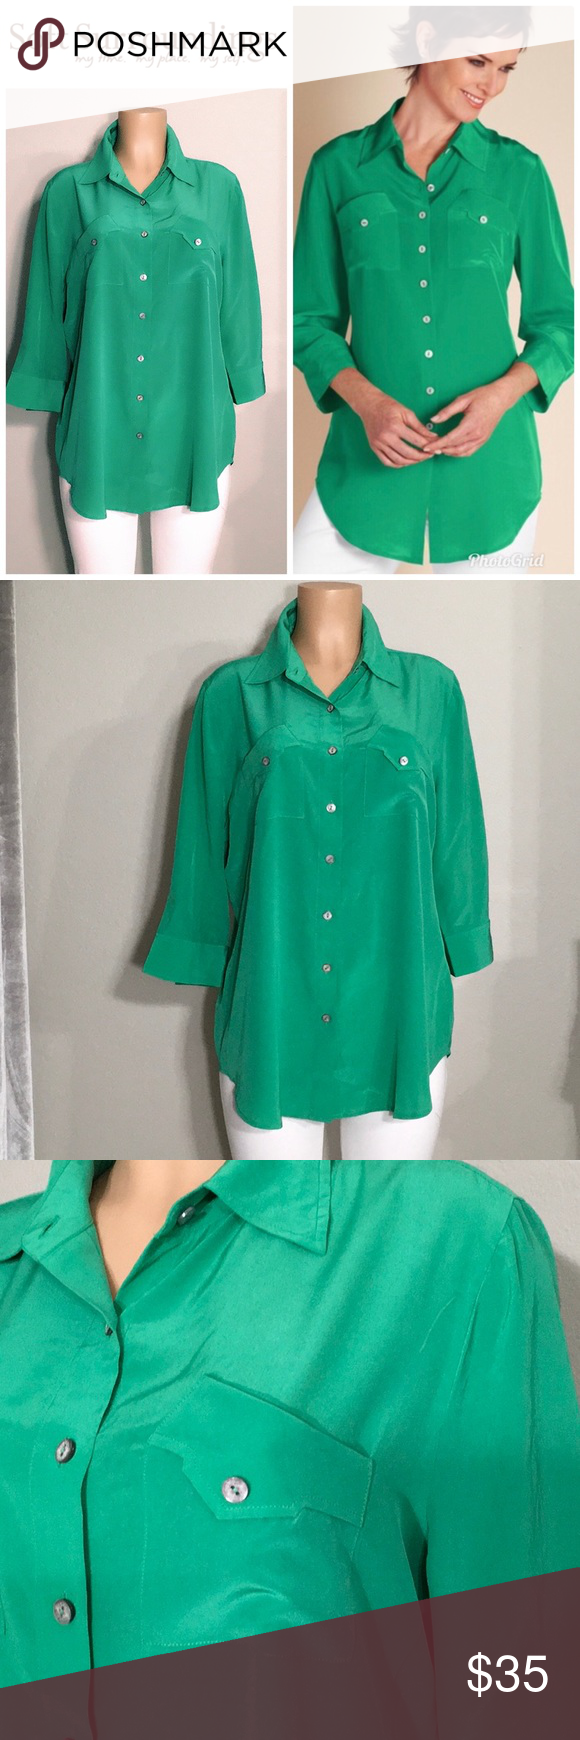 Soft Surroundings Green Silk Top Nwot Runs Large This Would Easily Fit